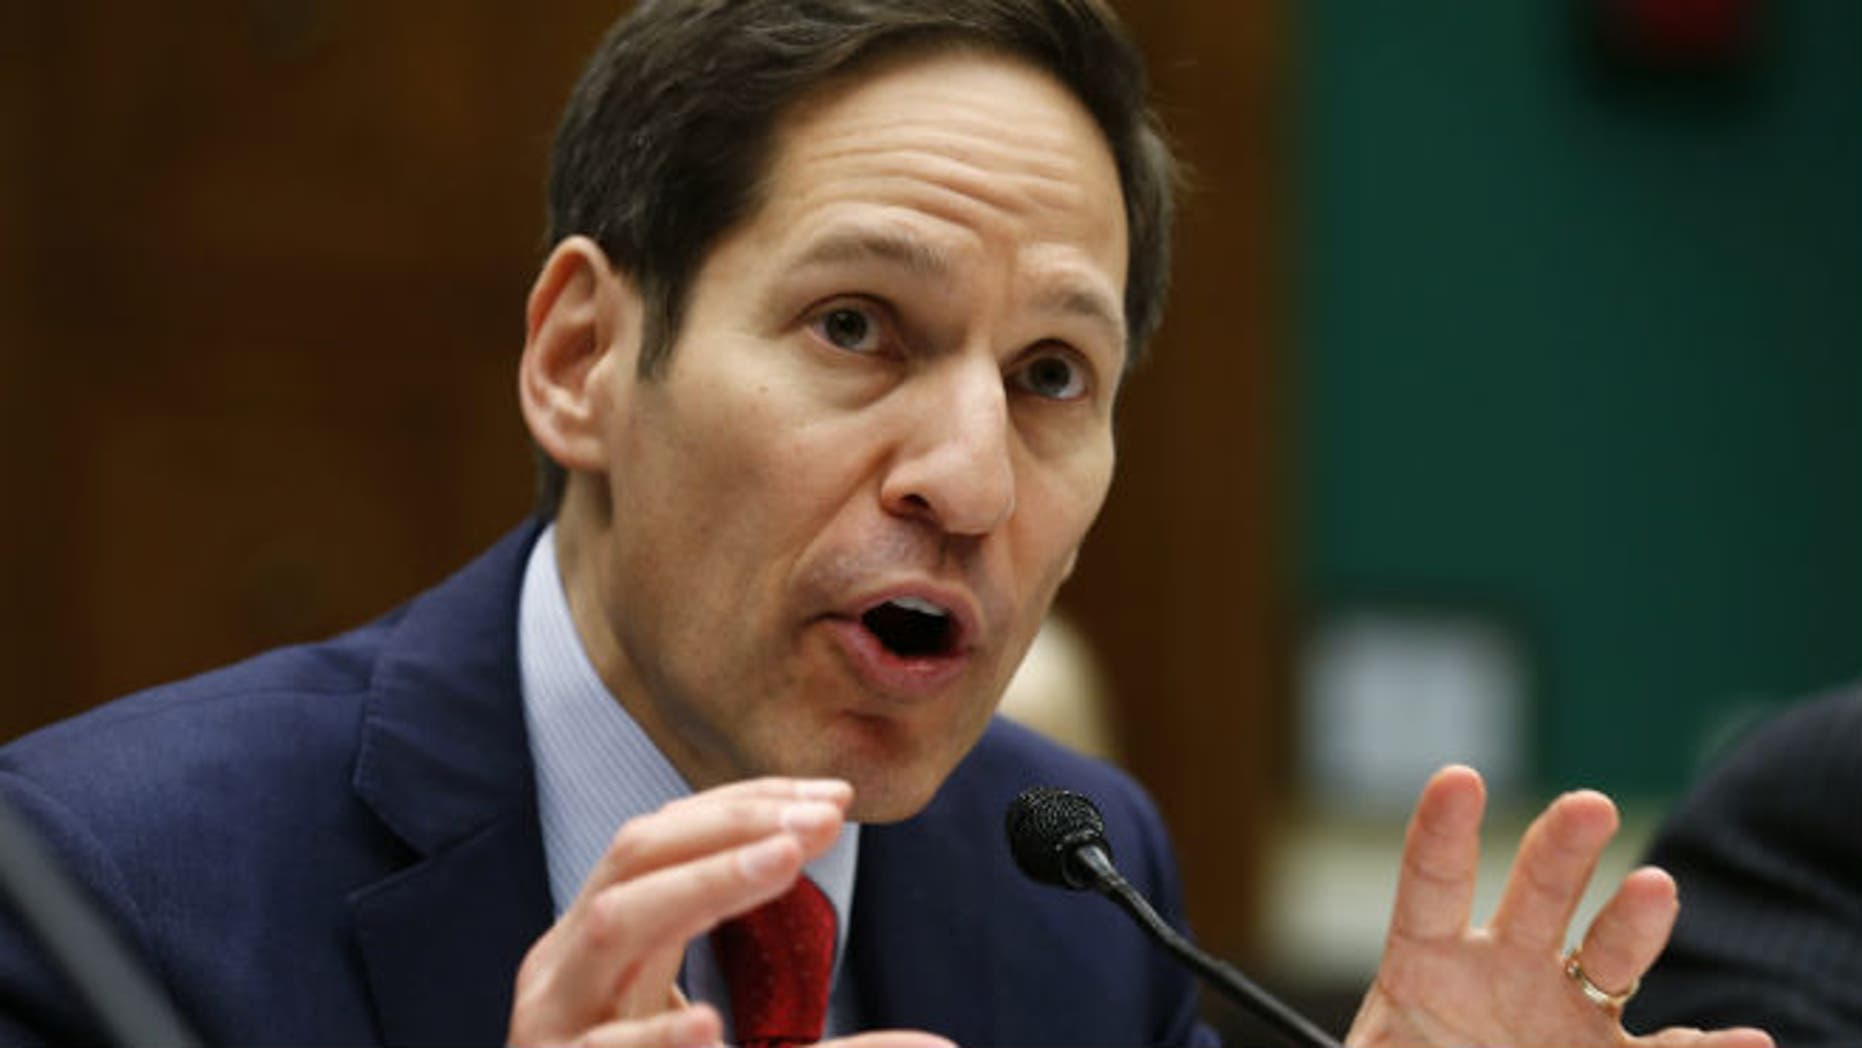 U.S. Centers for Disease Control and Prevention (CDC) Director Thomas Frieden testifies before the hearing on ''Review of CDC anthrax Lab Incident'' on Capitol Hill in Washington July 16, 2014. (CREDIT: REUTERS/KEVIN LAMARQUE)